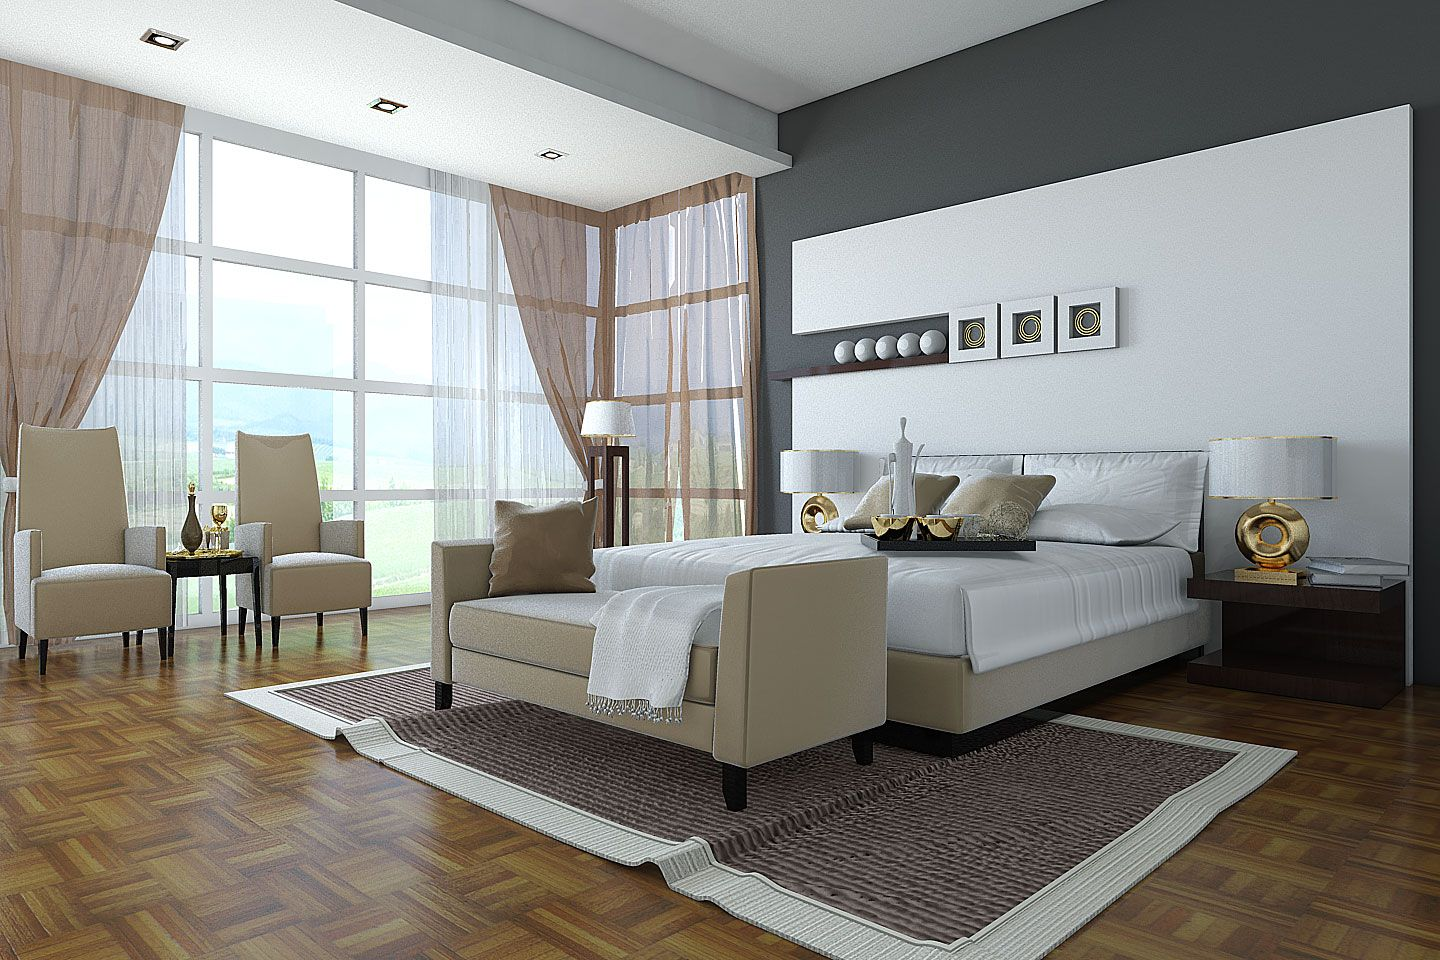 make the bedroom design by personality | Home decor | Pinterest